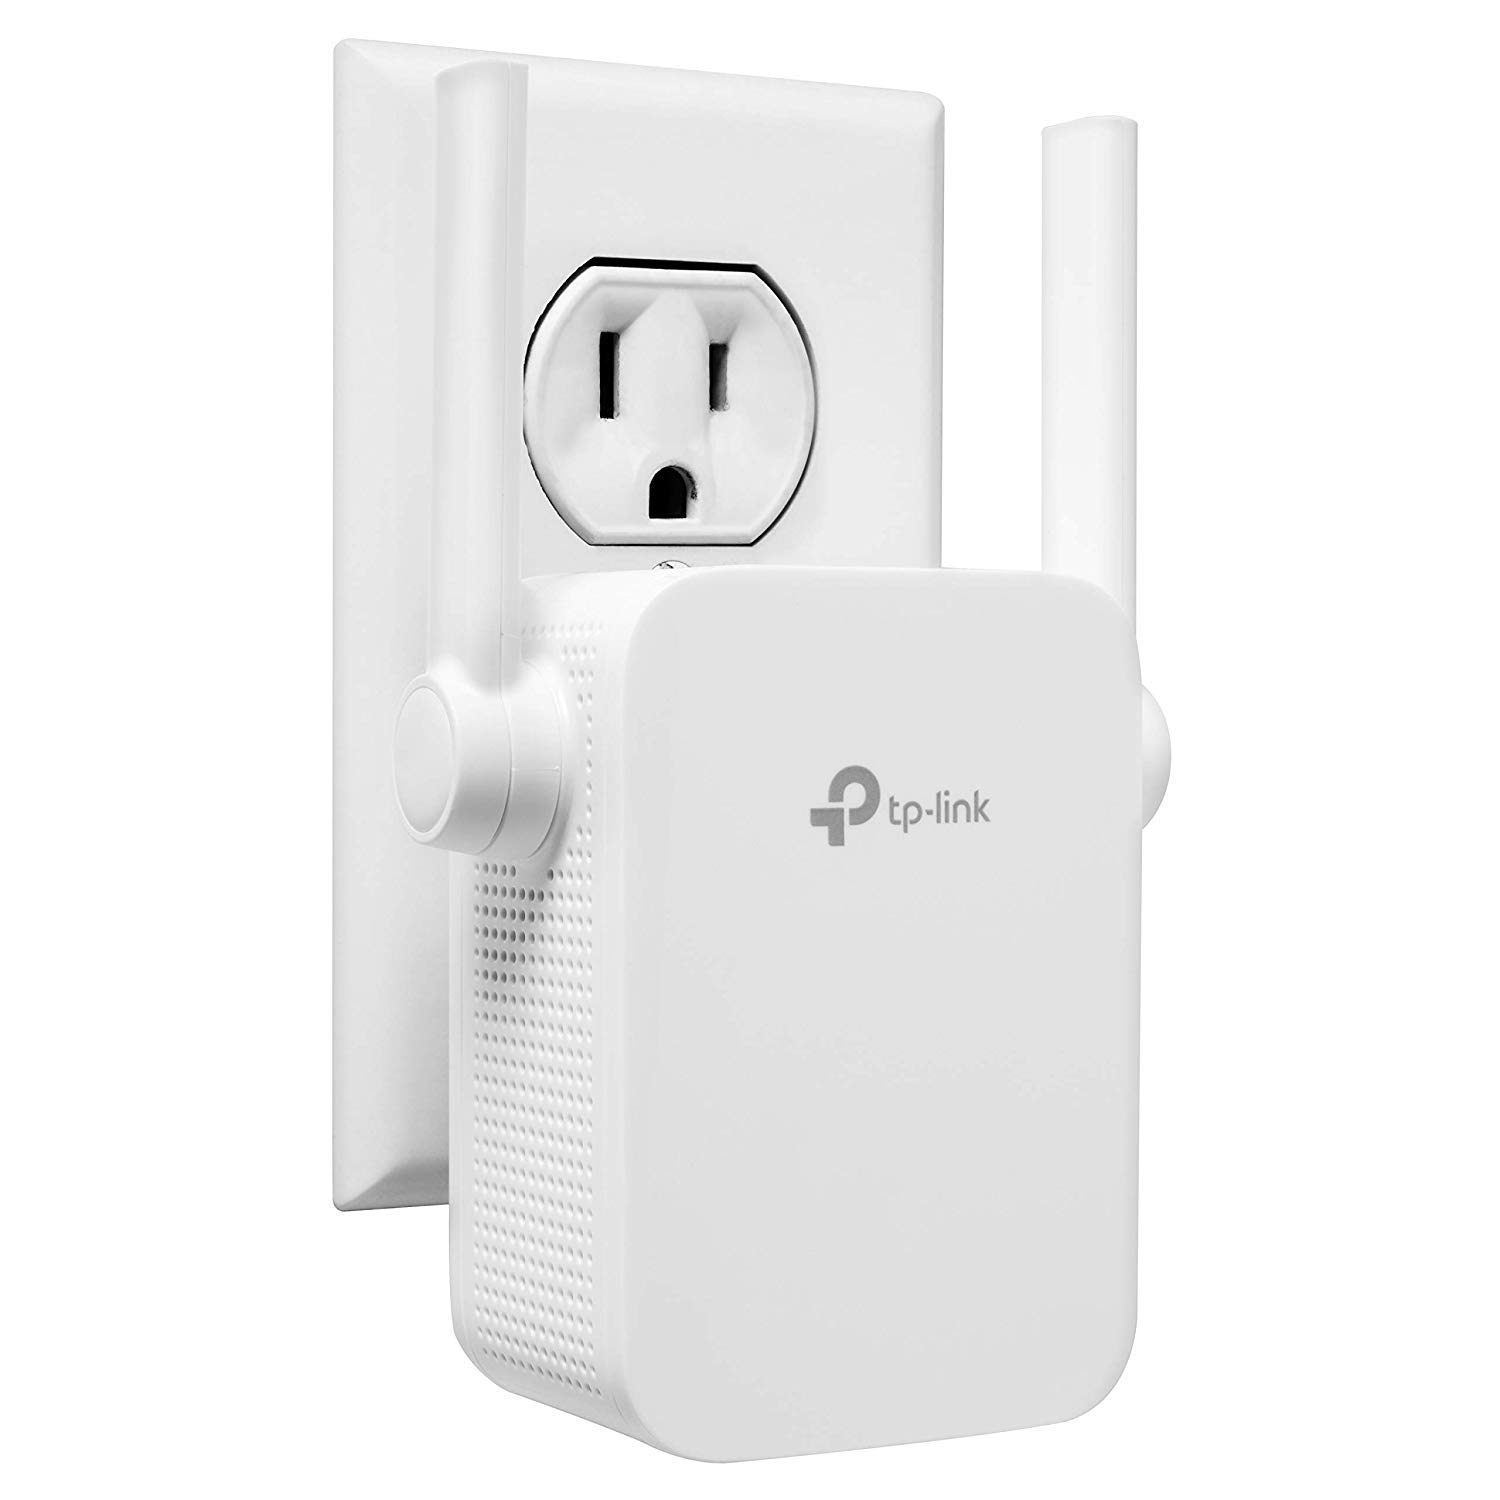 TP-Link N300 WiFi Range Extender with External Antennas and Compact Design (TL-WA855RE) (Renewed) by TP-Link